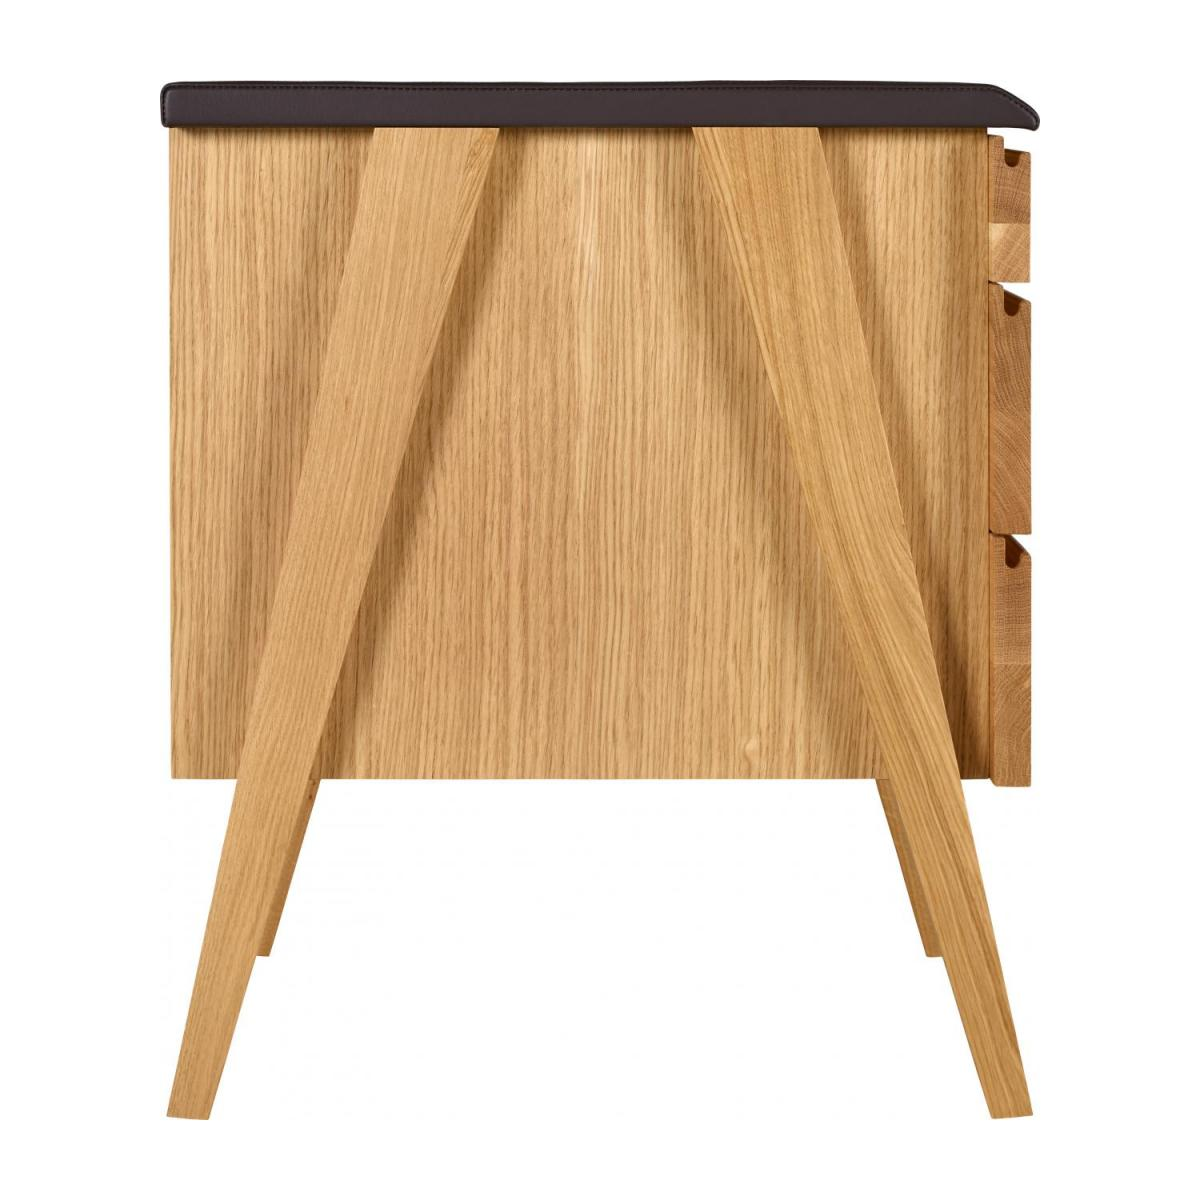 Cajonera de oficina - Roble- design by Habitat Design Studio n°5